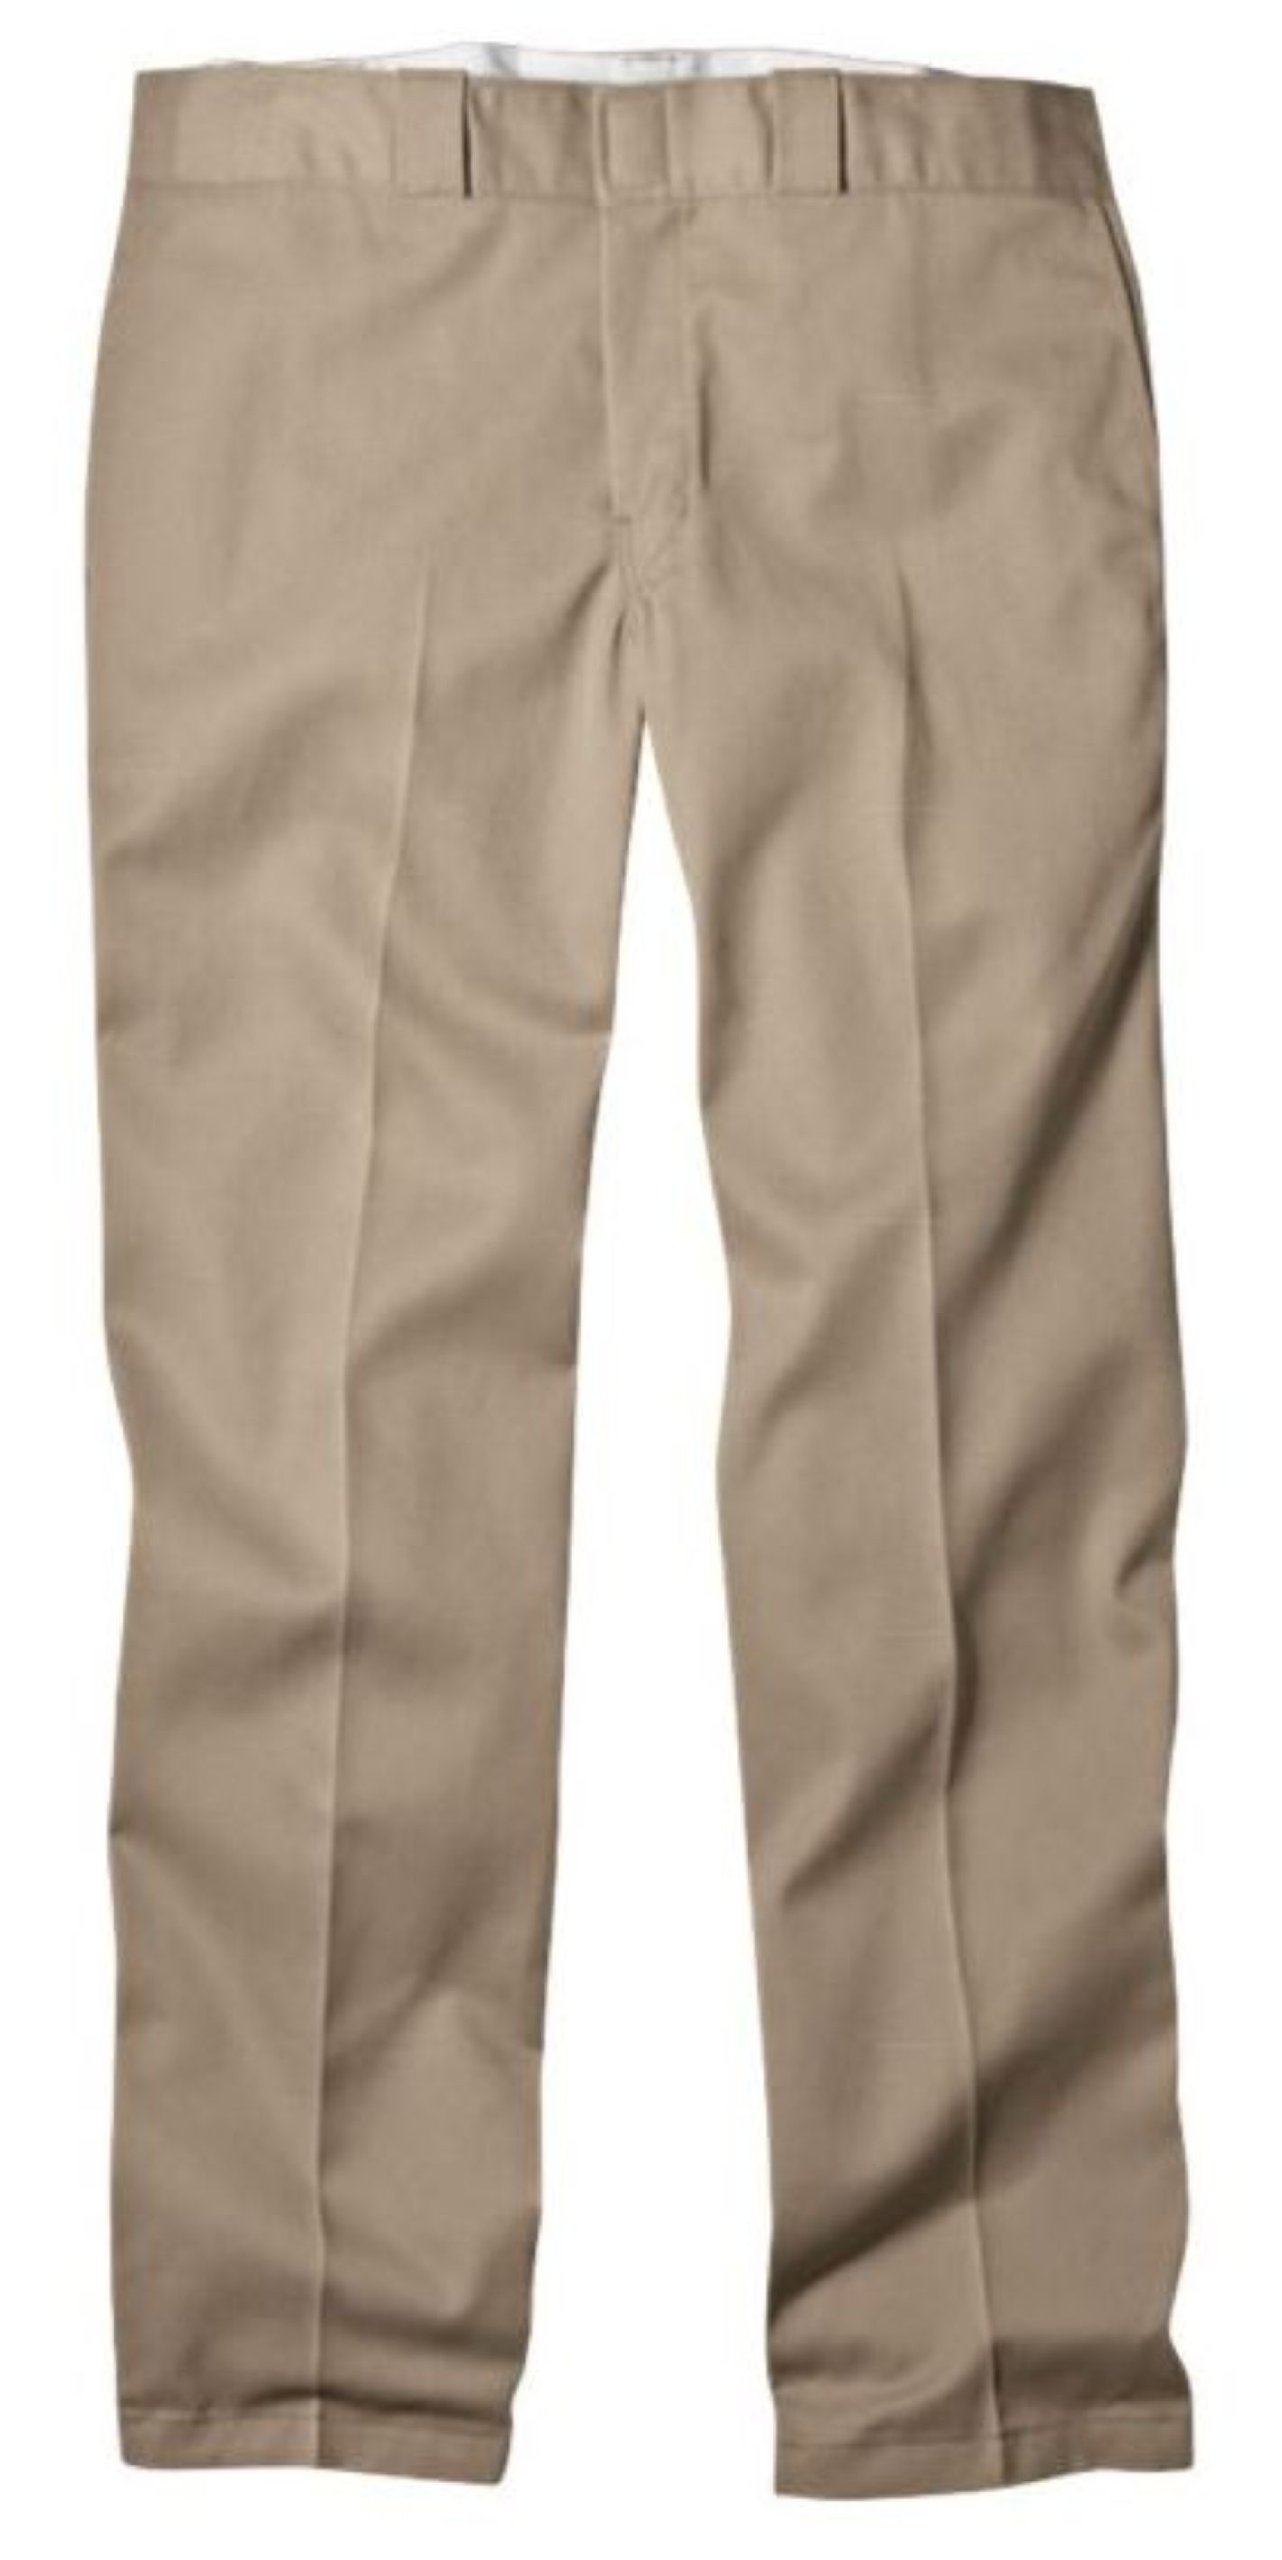 32'' Inseam Dickies Original 874 Work Pants, KHAKI, 36 by Dickies